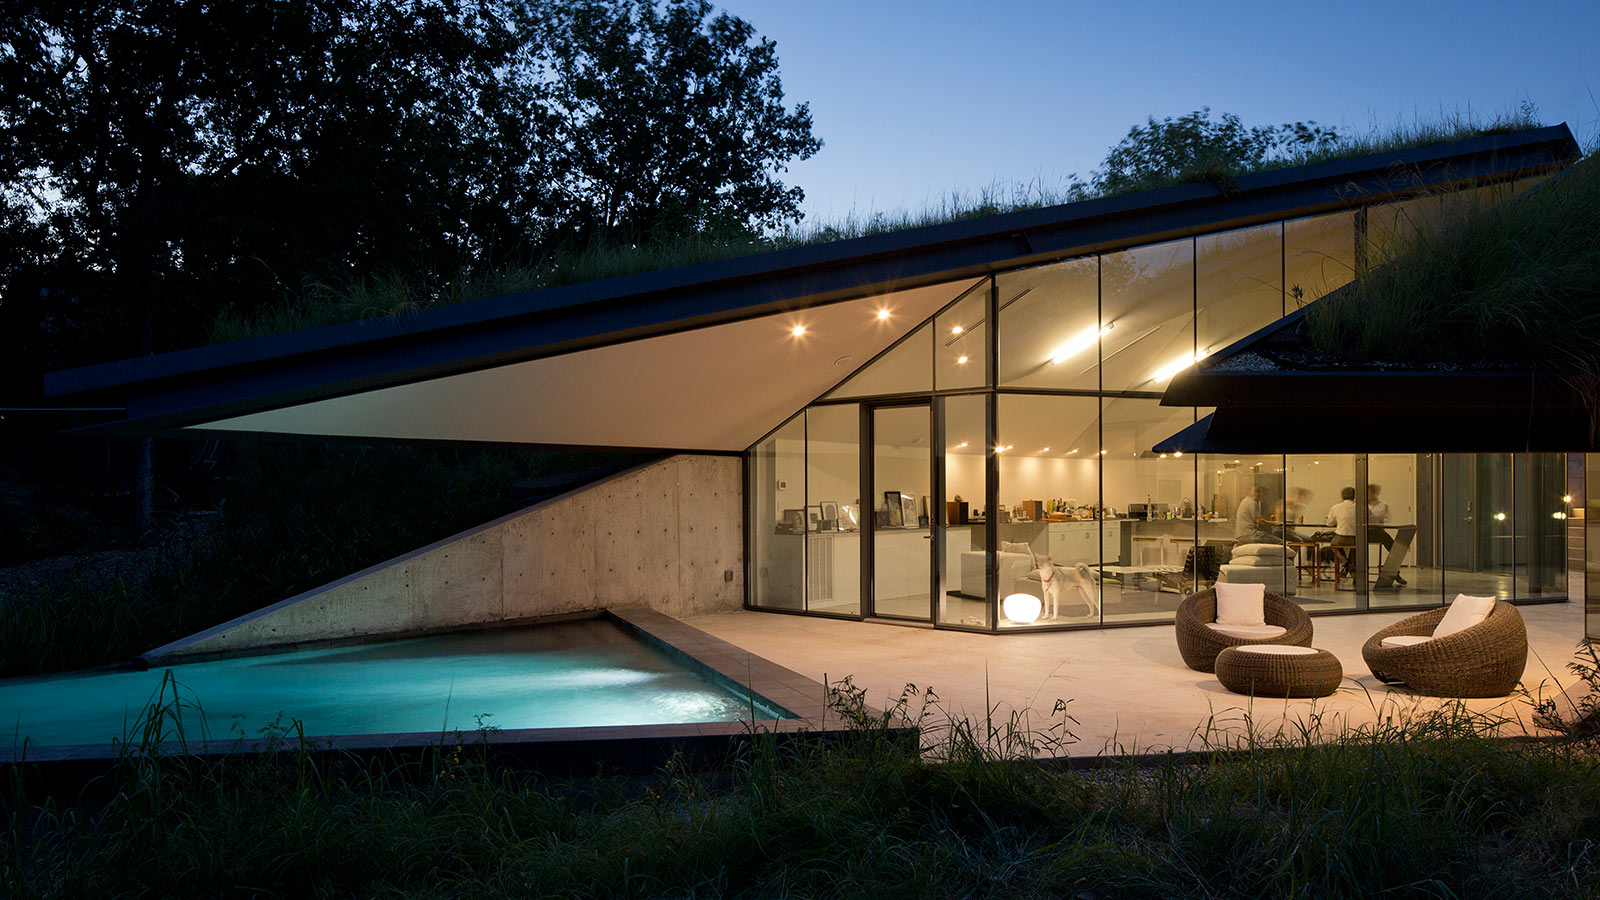 Futuristic House Brilliant Edgeland Residence A Futuristic House With A Smart Pool Fit For A Design Decoration